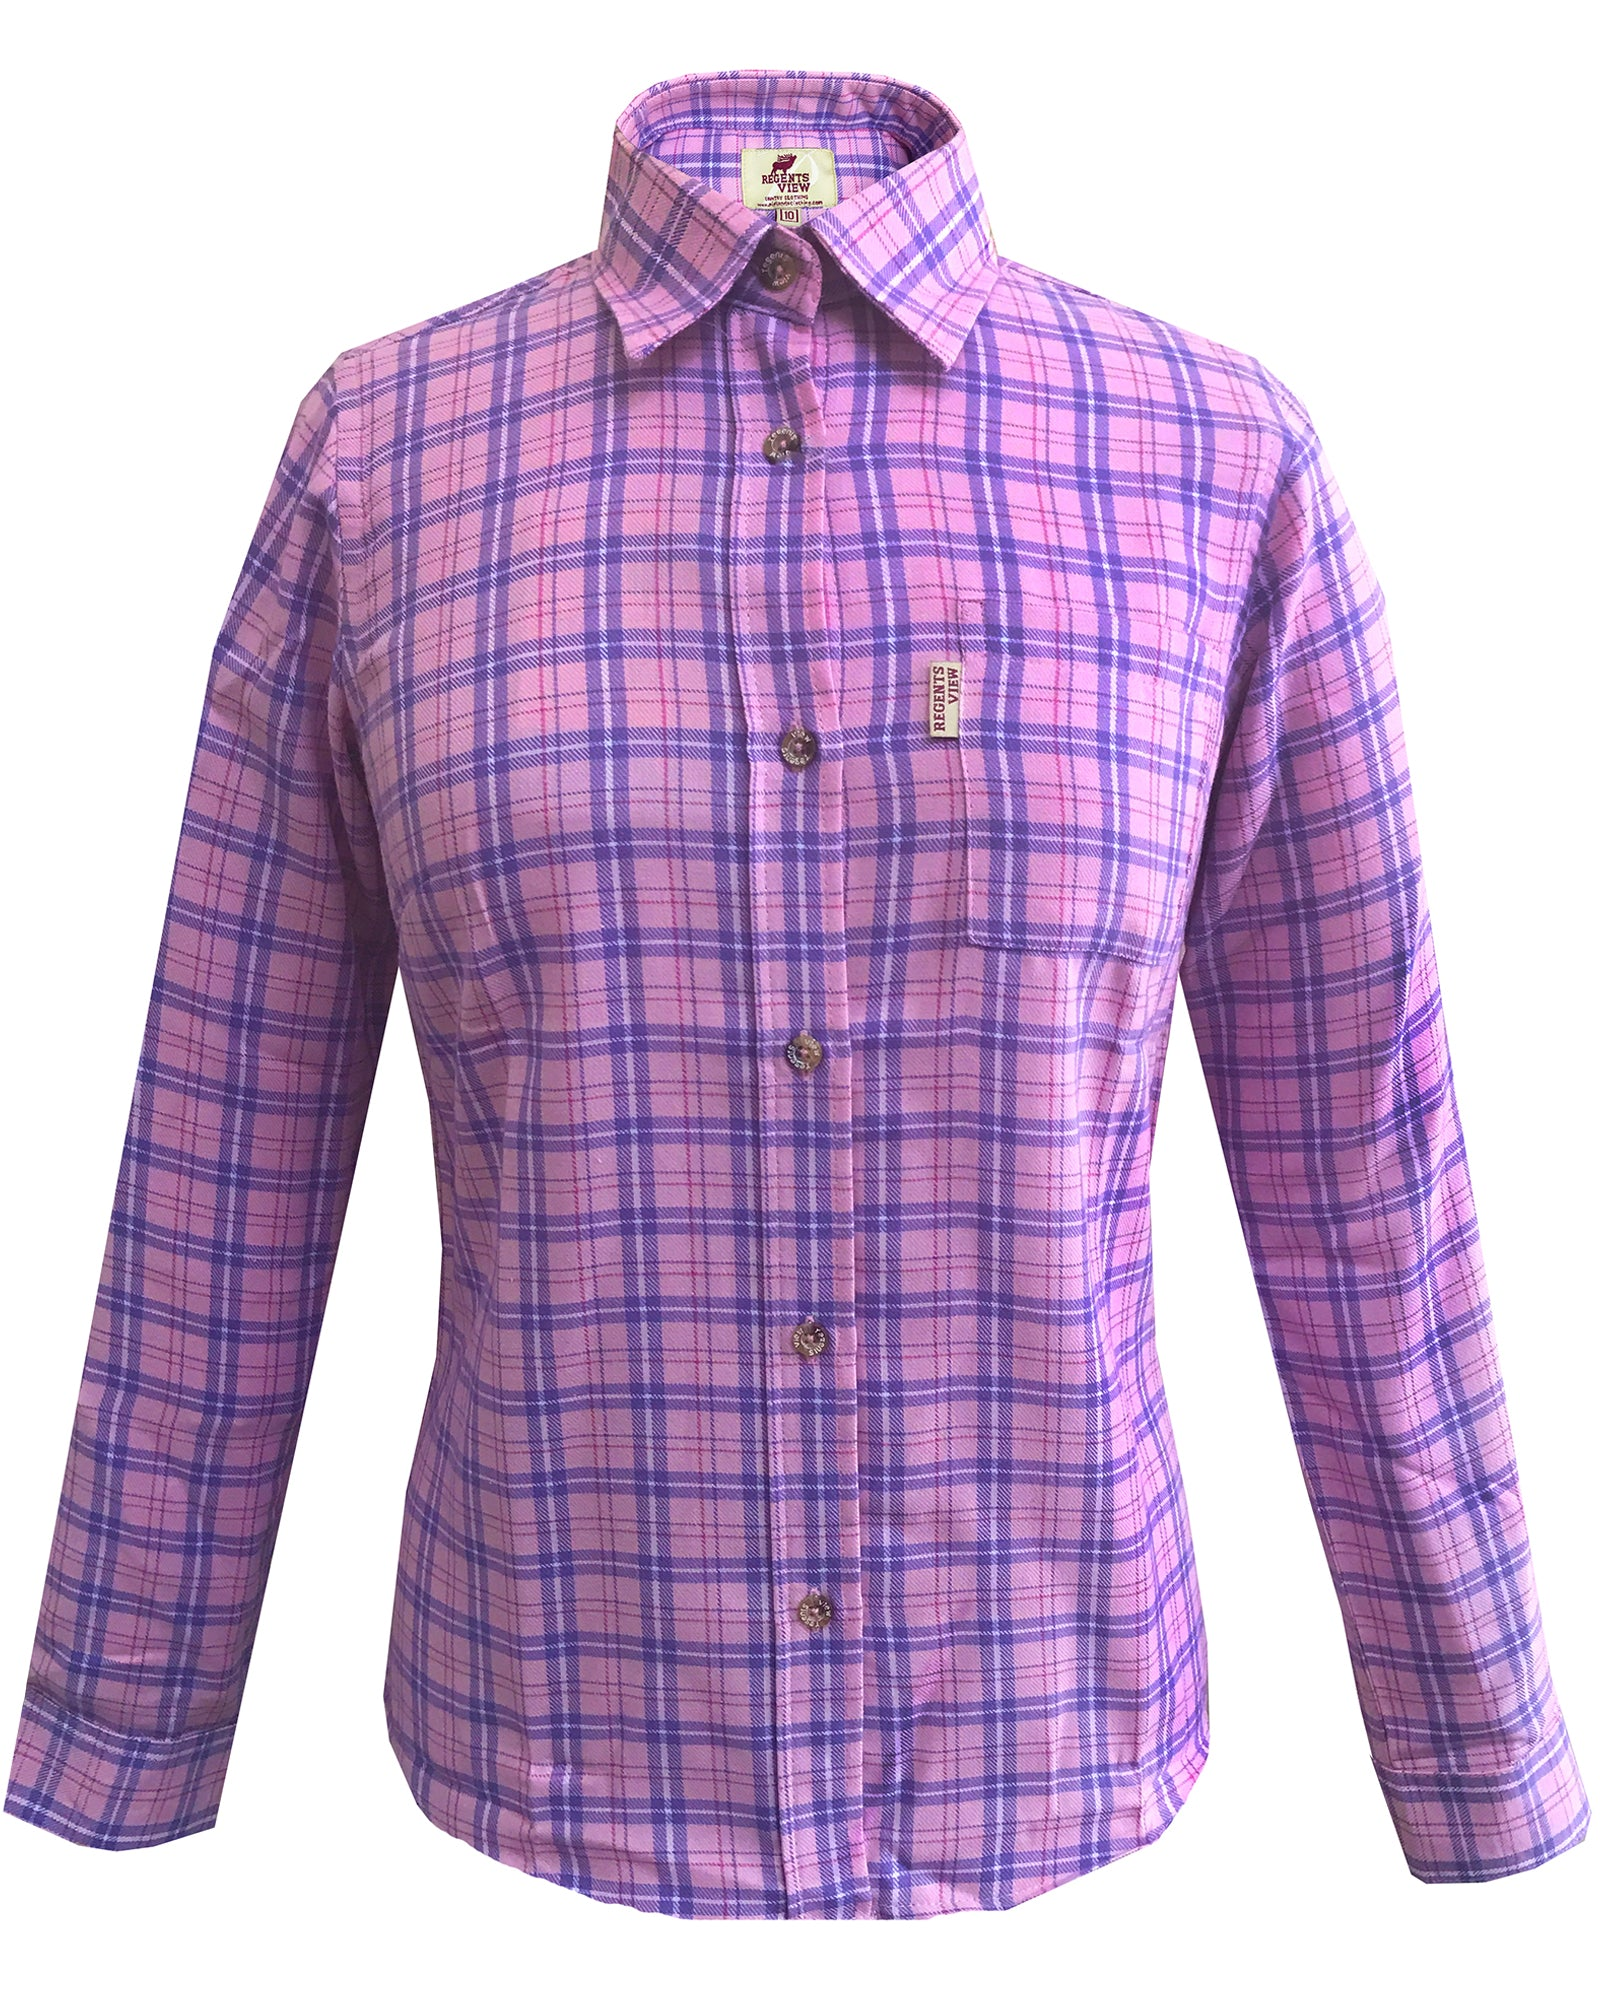 Regents View Women Superior Quality Long Sleeve Shirt - SHP1 Purple